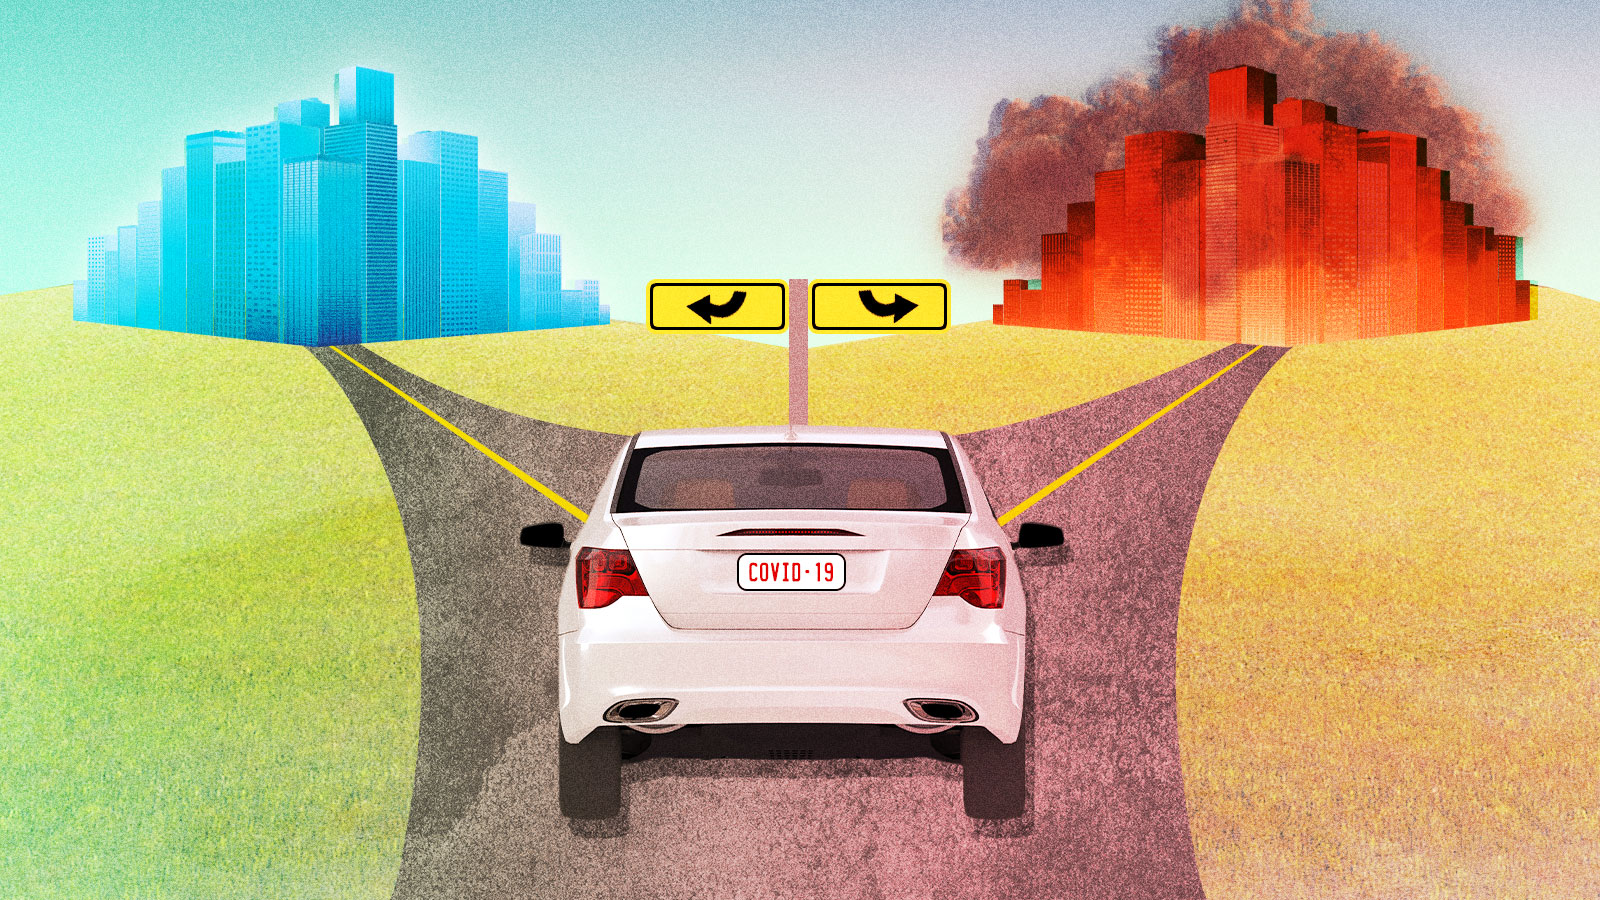 A car at a crossroads leading to a clean city and a city covered in smog